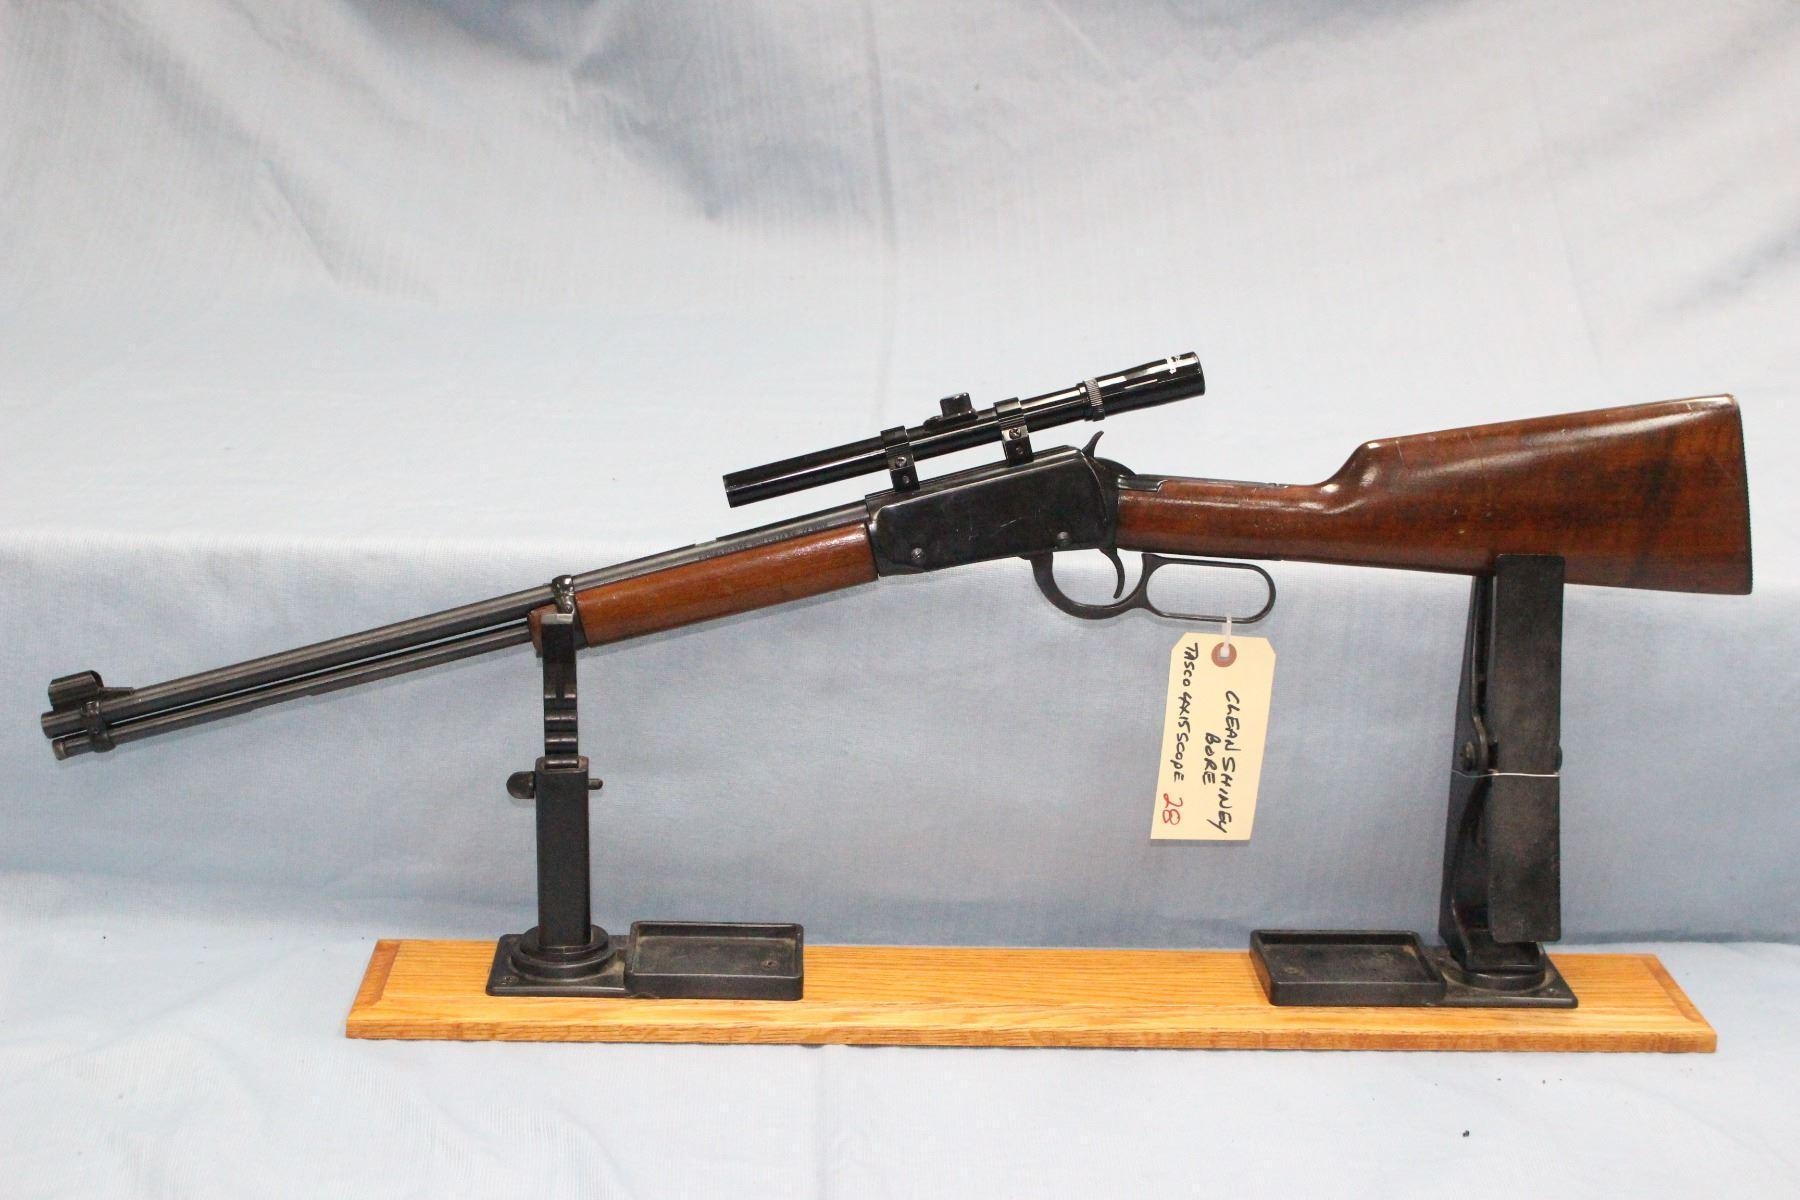 Erma EG73 with mounted scope